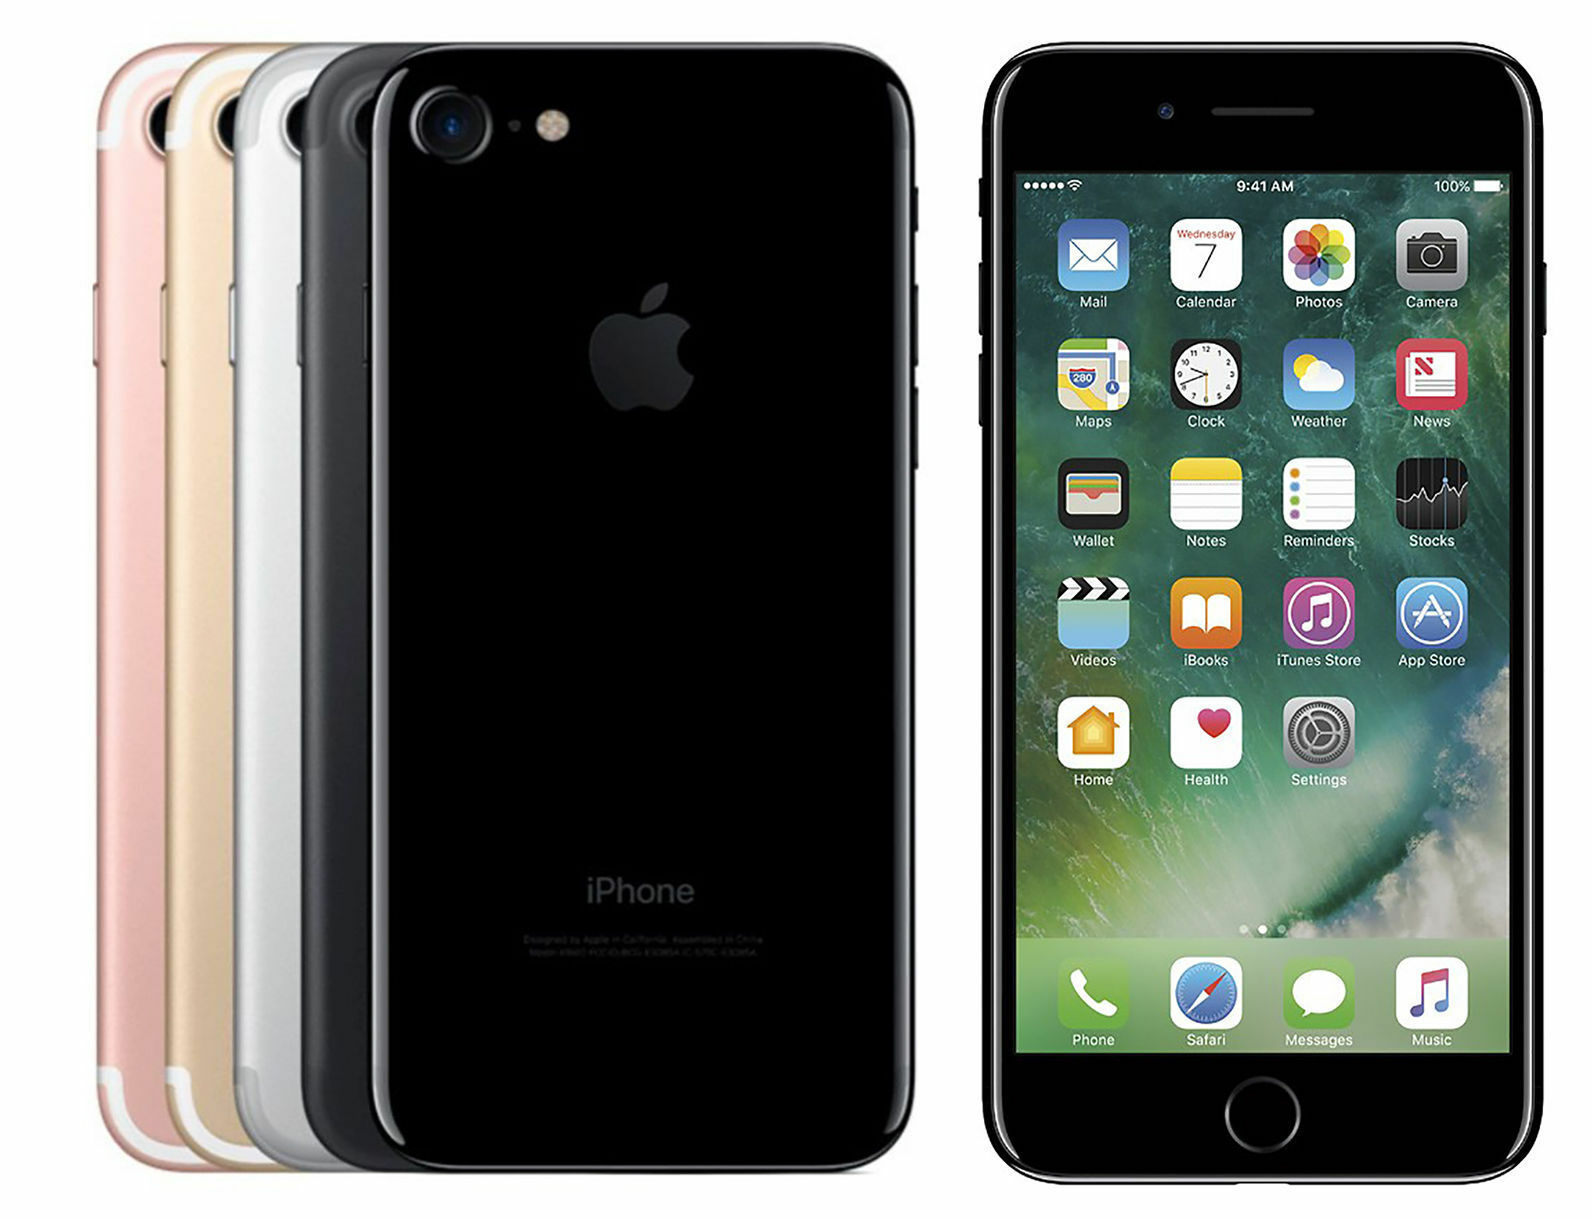 Iphone - Apple iPhone 7-32GB - GSM UNLOCKED-USA Model-Apple Warranty-BRAND NEW